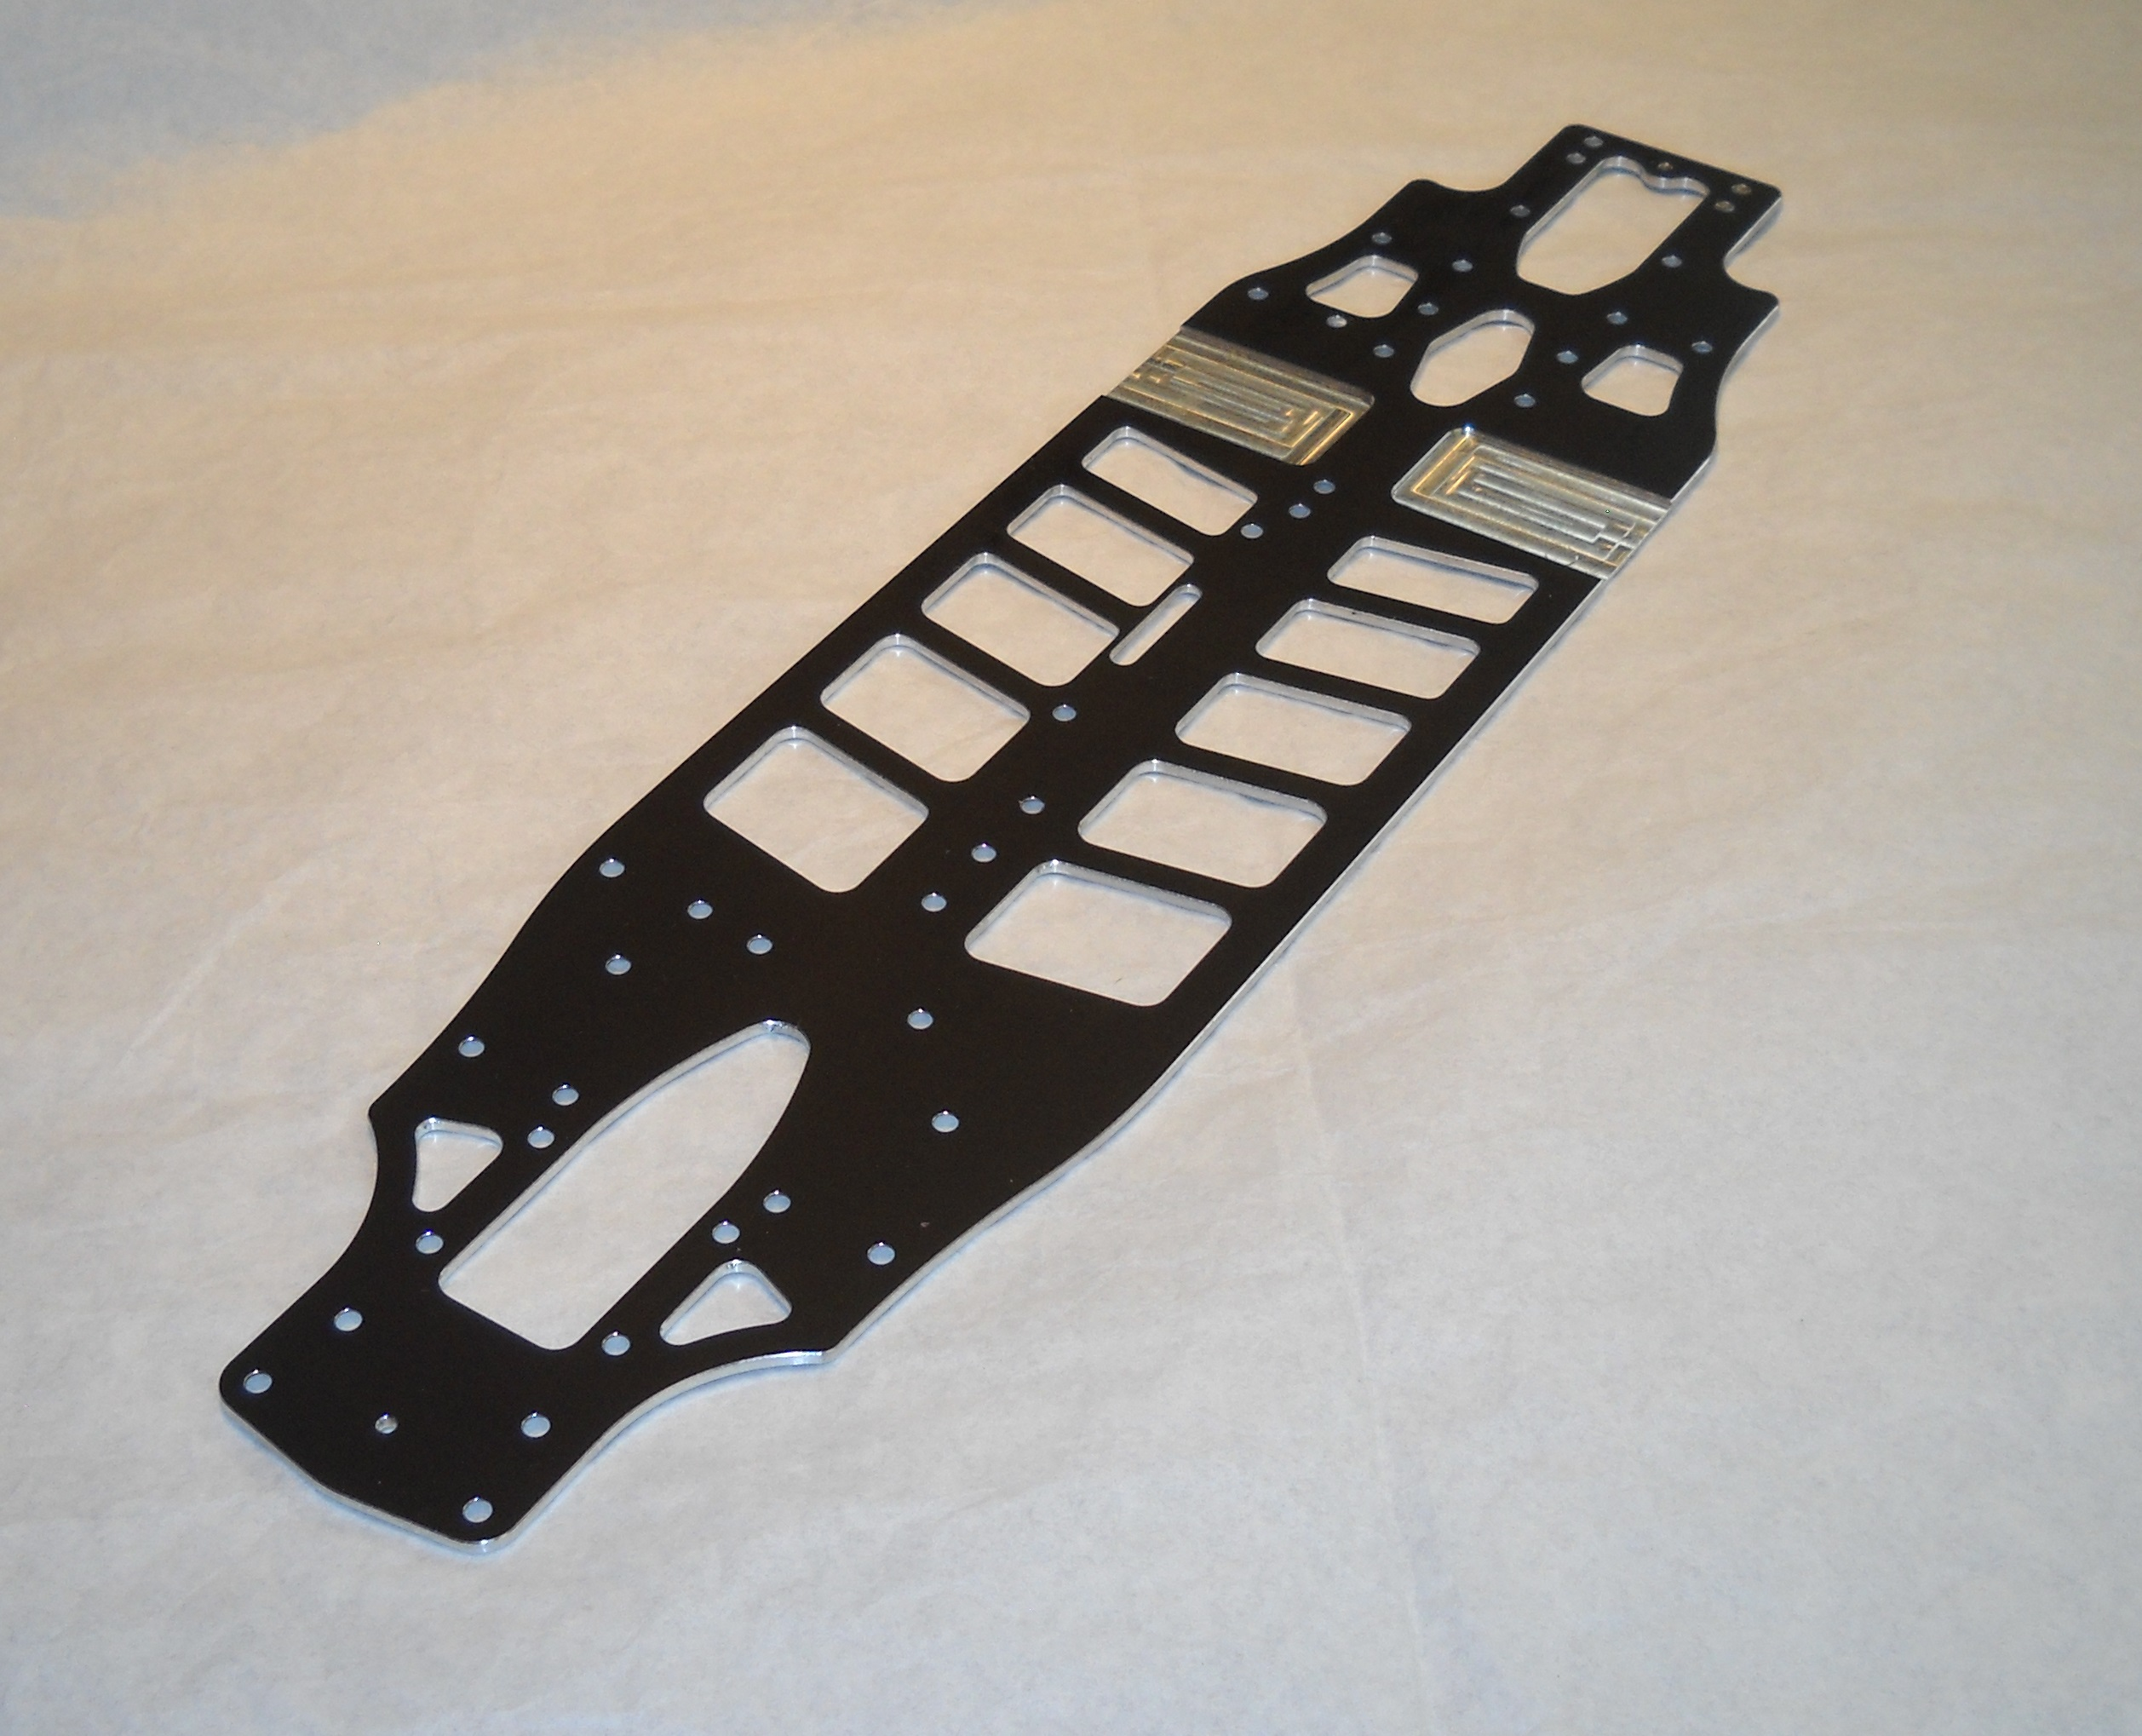 OPT019 - WRC STX 2015 - 7075 Chassis